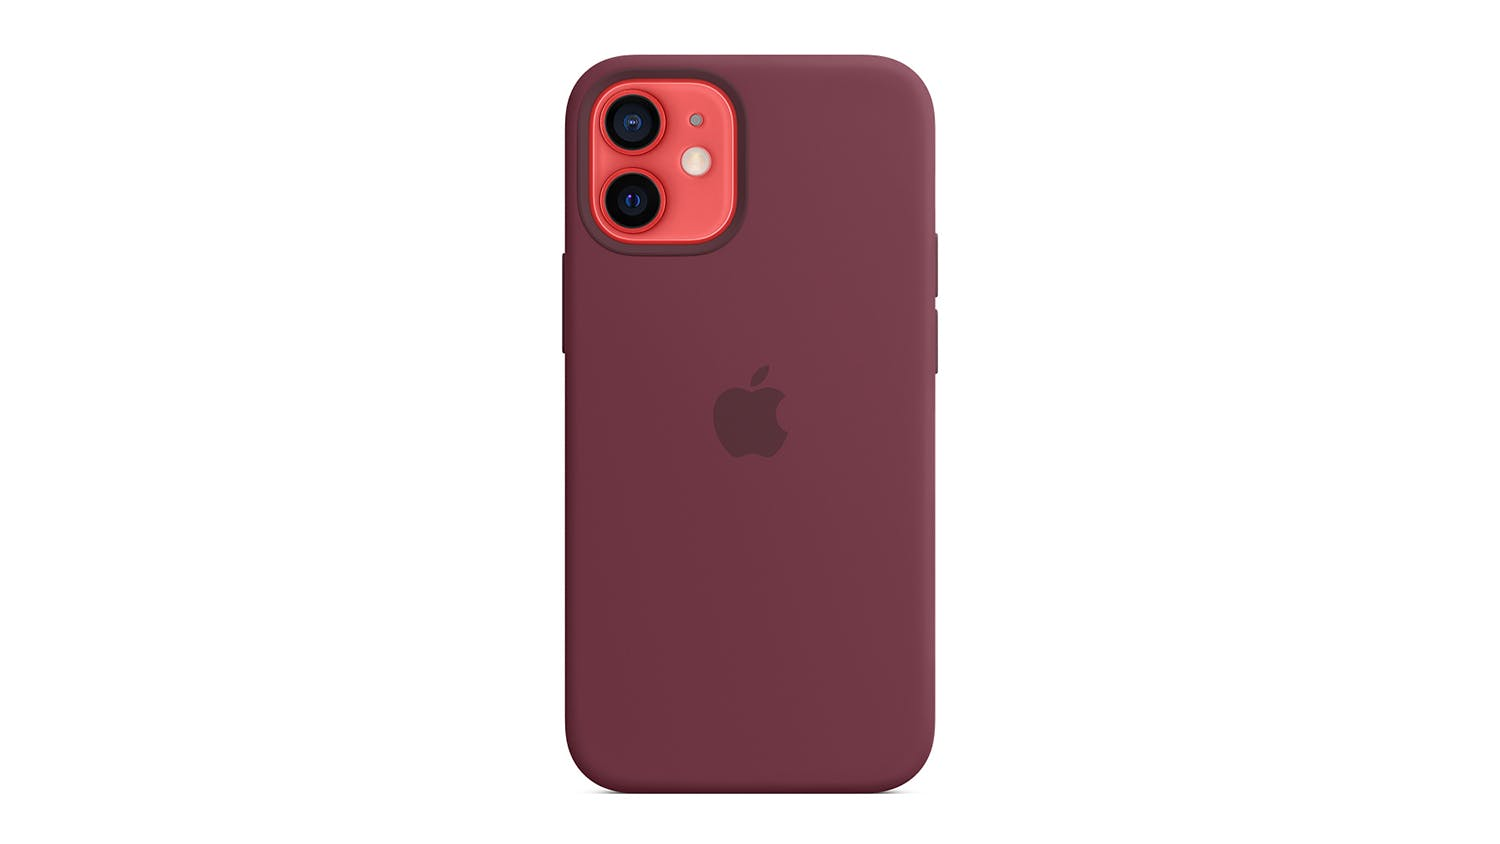 Apple Silicone Case with MagSafe for iPhone 12 mini - Plum